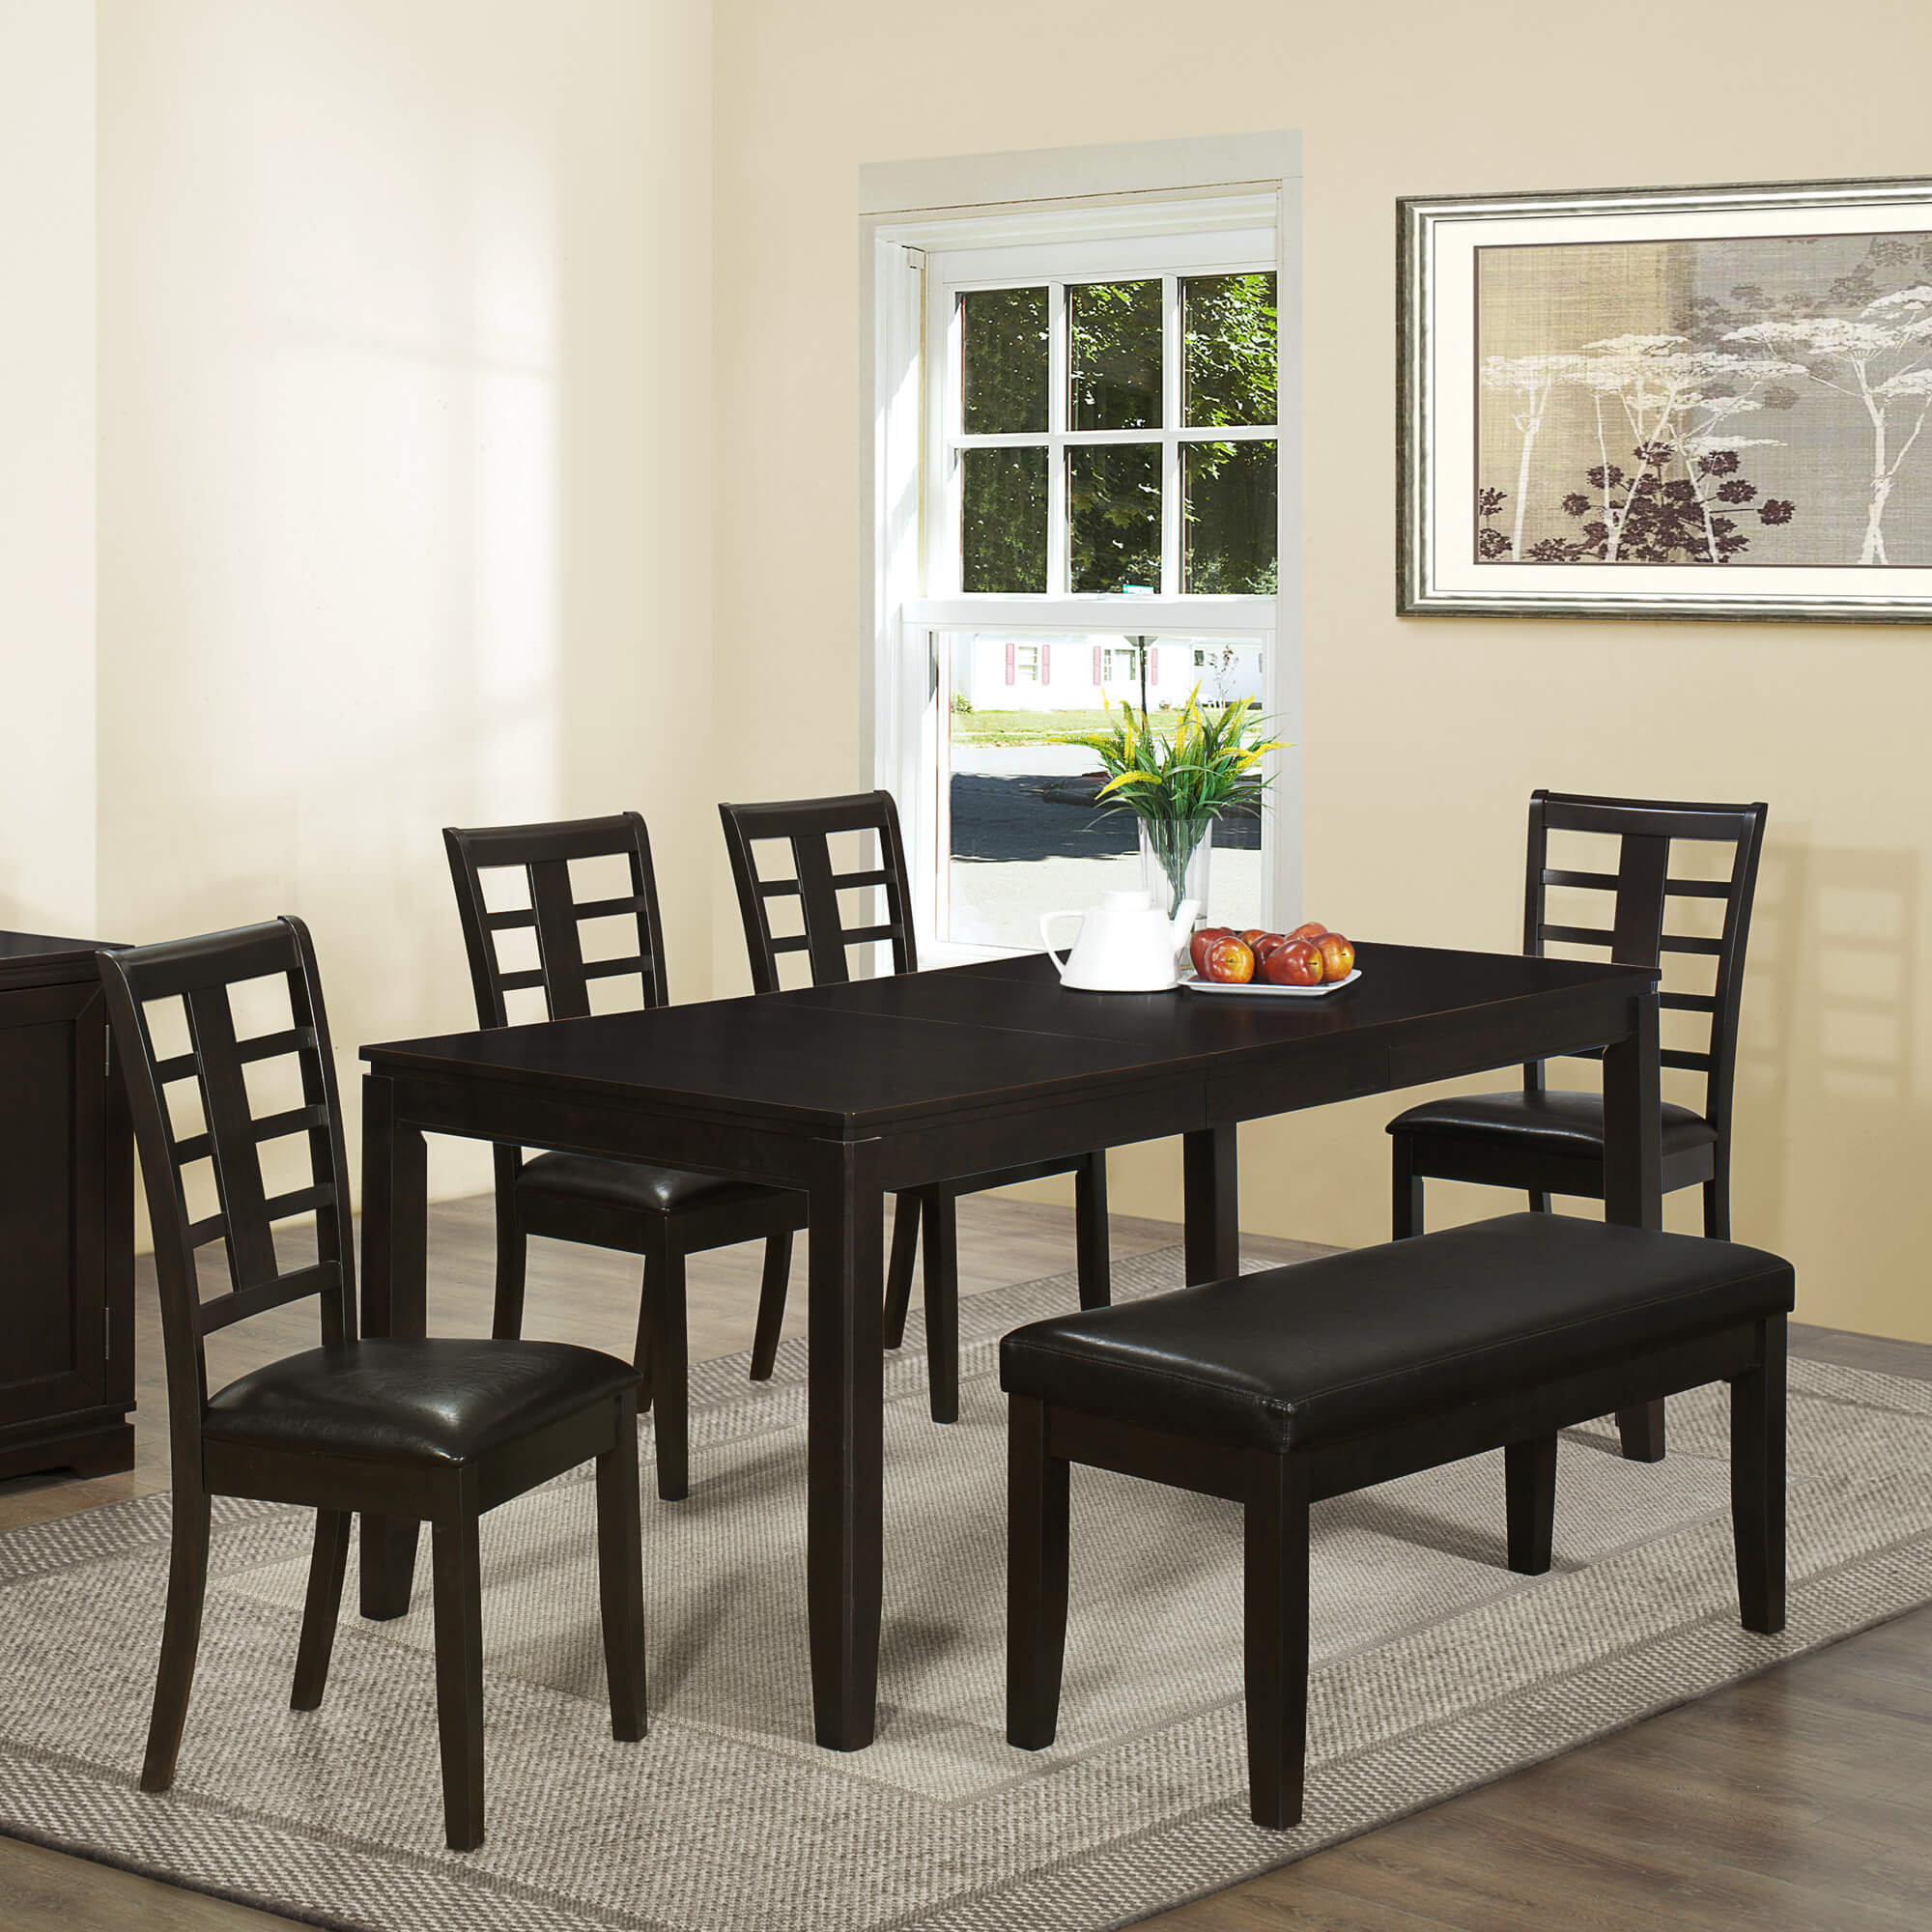 26 big small dining room sets with bench seating for Narrow dining room table set